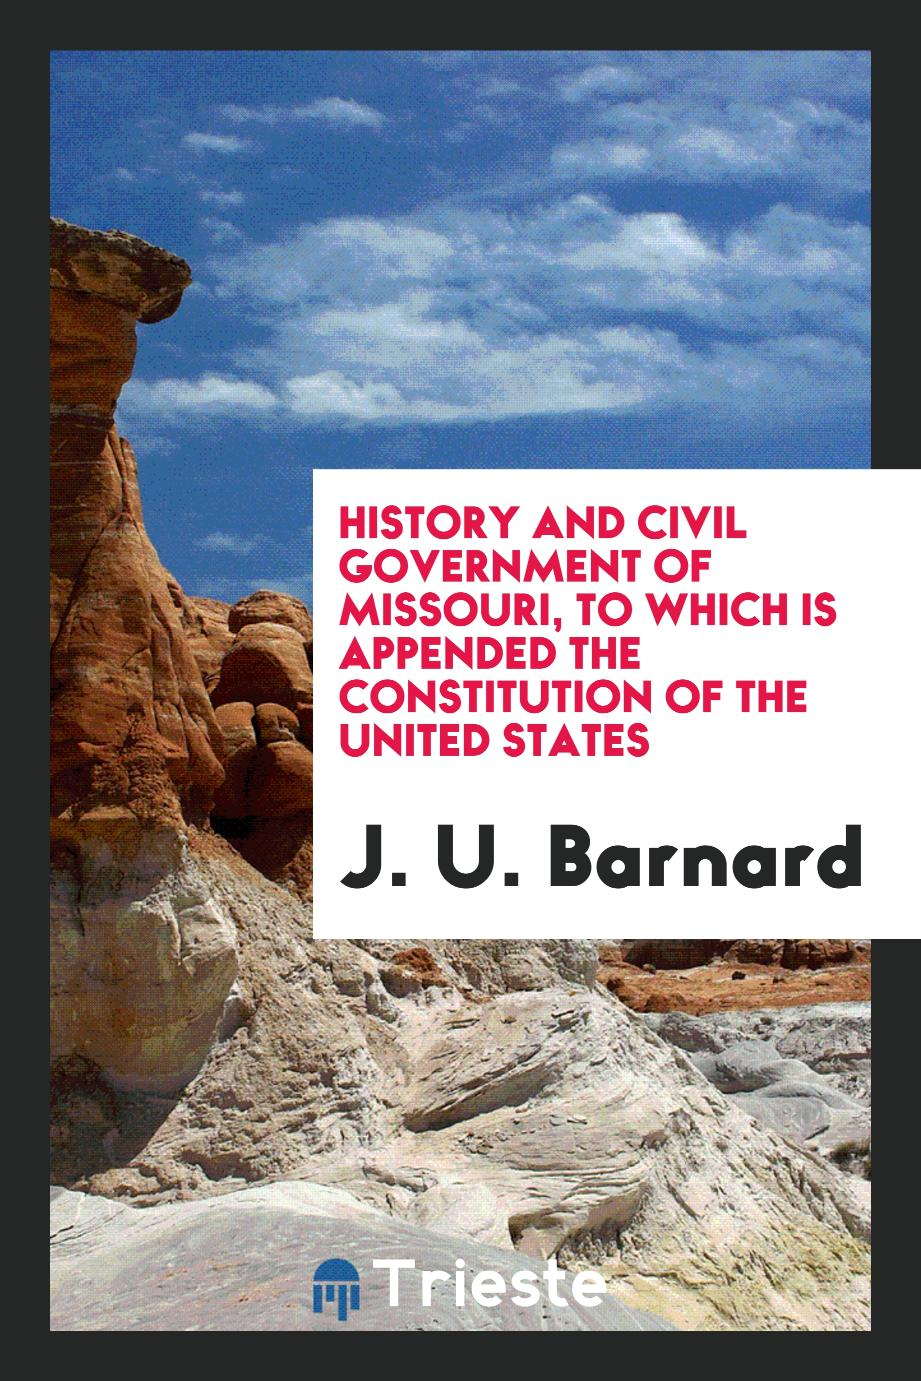 History and Civil Government of Missouri, to which is Appended the Constitution of the United States